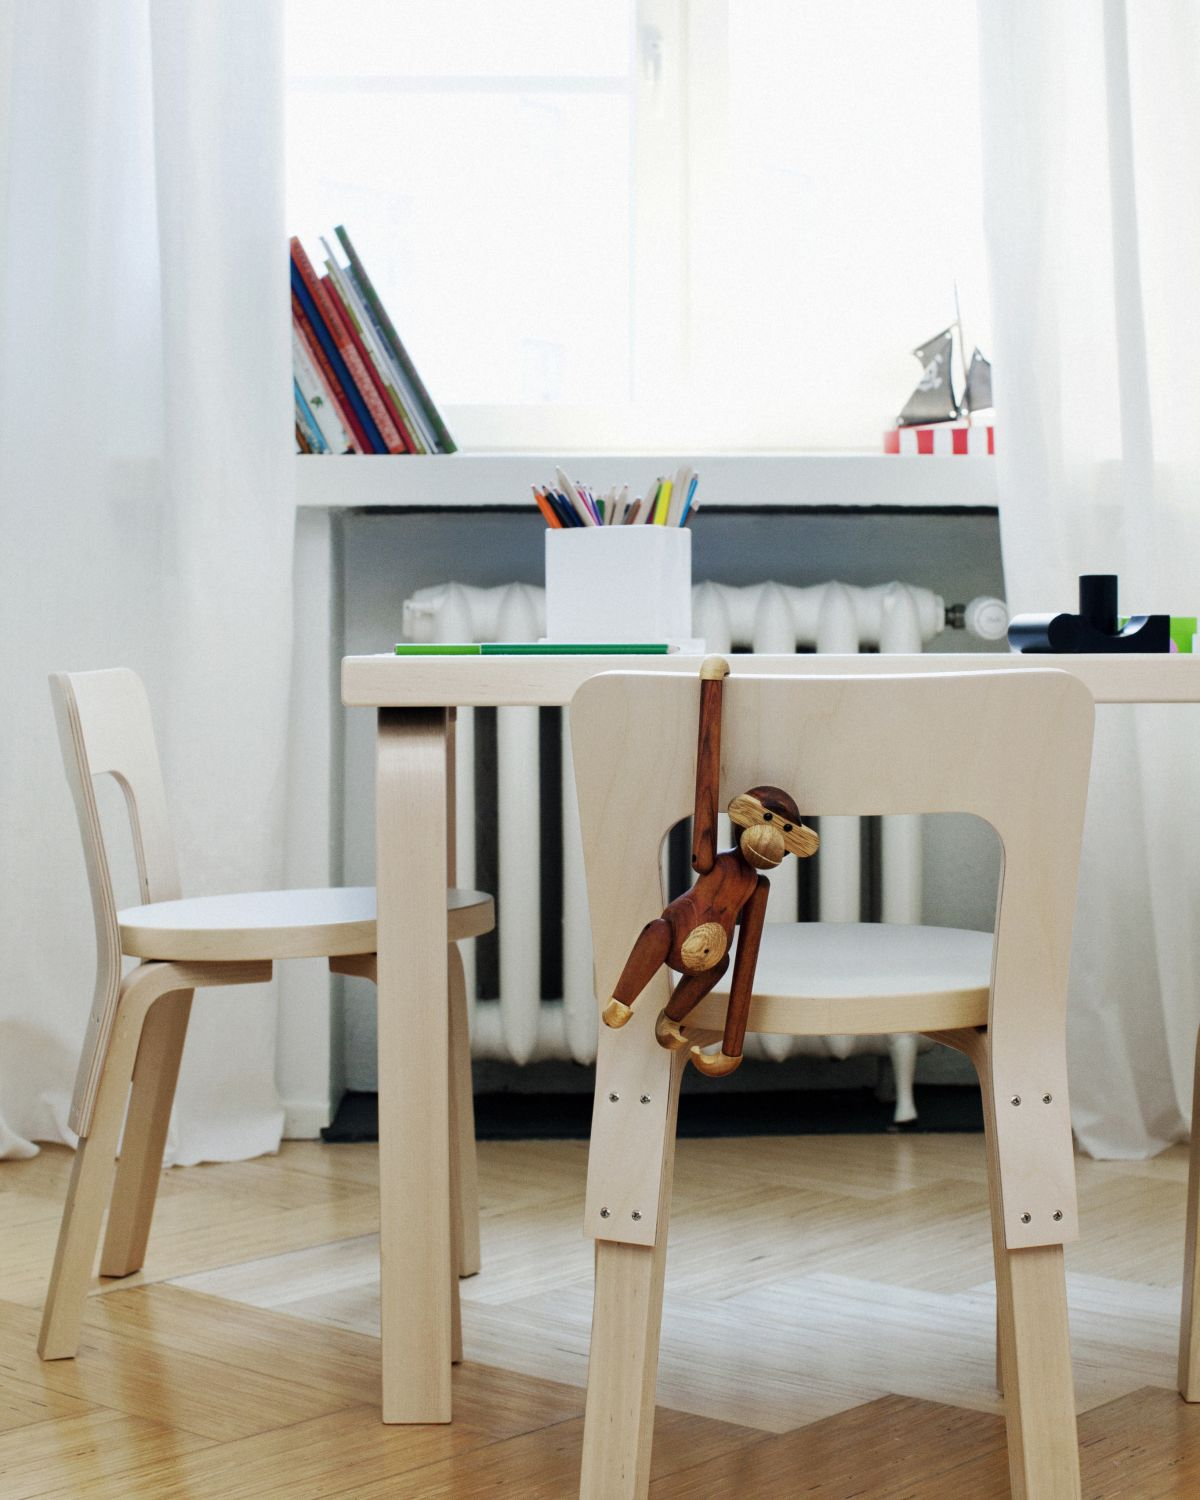 Children's Chair N65 and Aalto Table 81B in situ close up